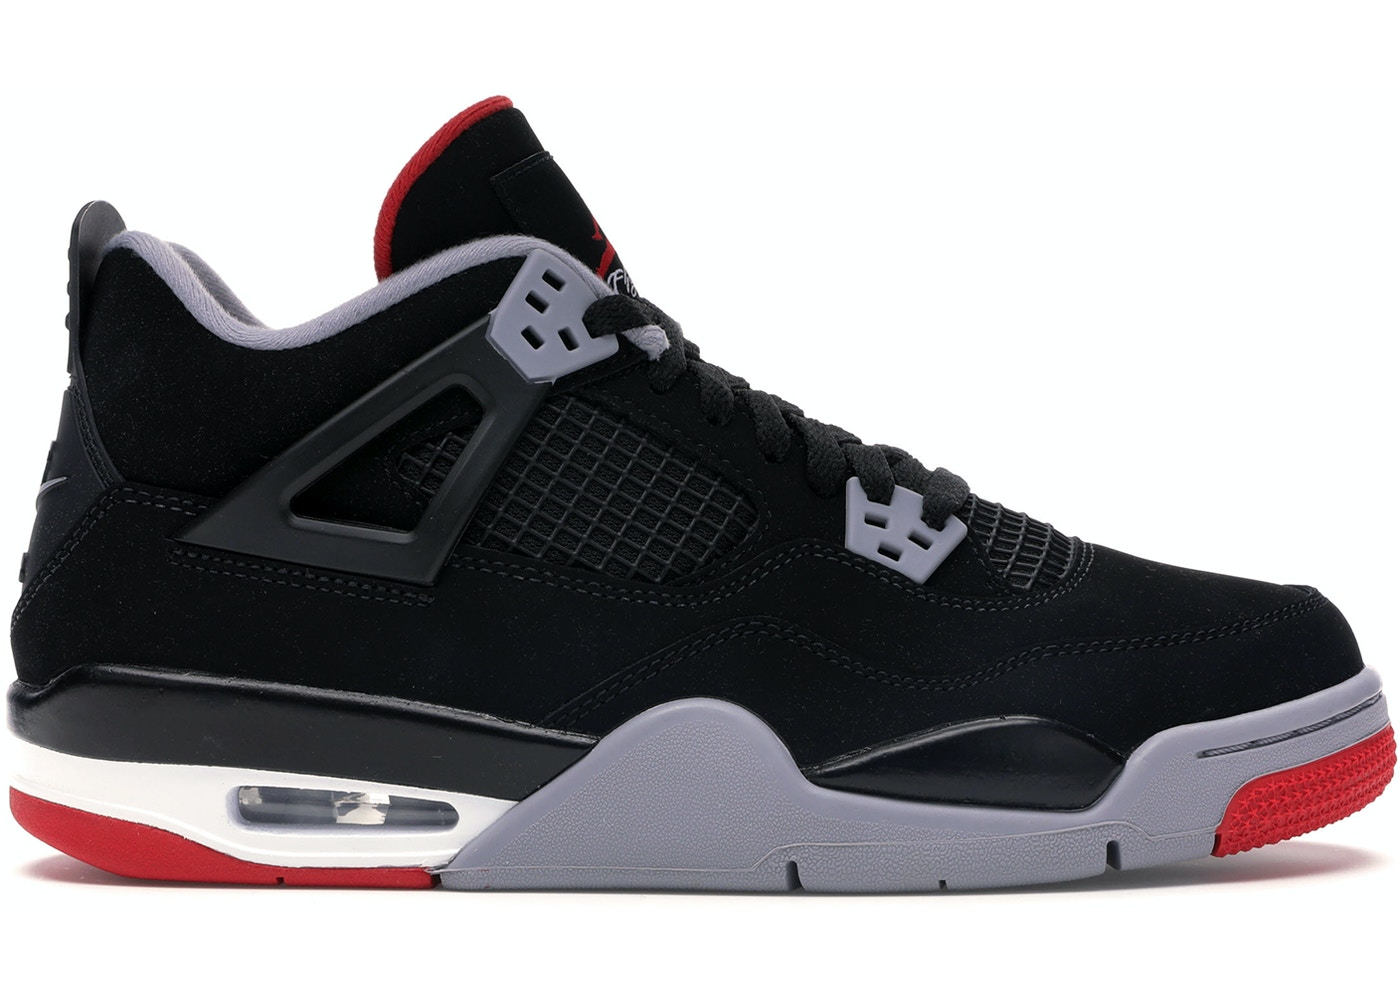 the best attitude cbc67 0c106 Jordan 4 Retro Bred 2019 (GS)